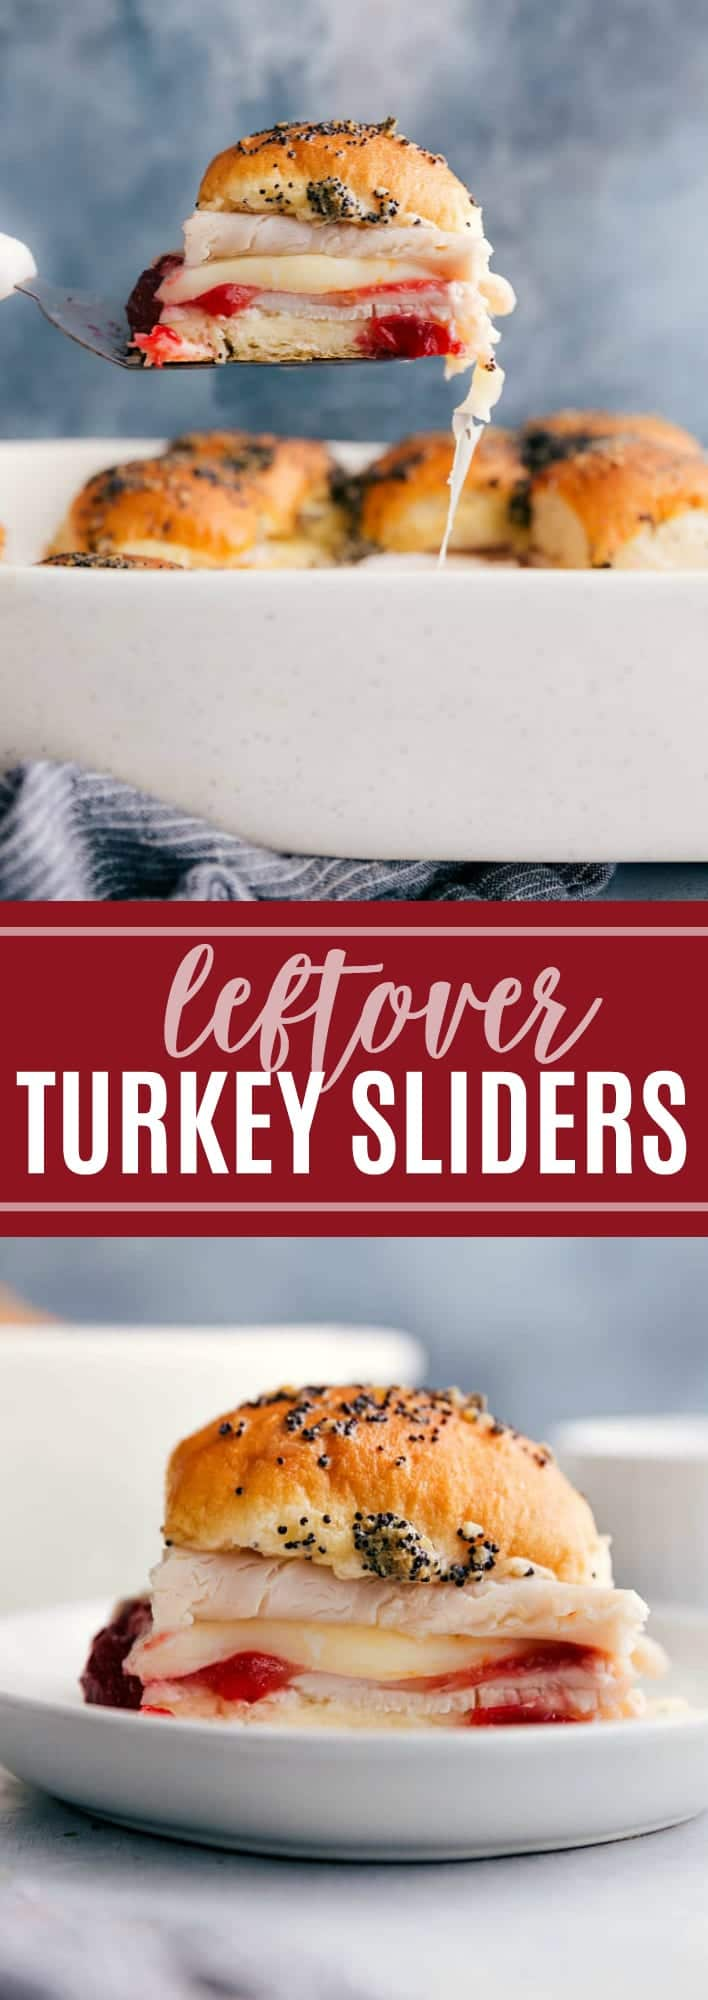 The ultimate BEST EVER turkey sliders using Thanksgiving leftovers! via chelseasmessyapron.com #slider #thanksgiving #leftover #recipe #recipes #easy #quick #sliders #party #appetizer #turkey #cranberry #rolls